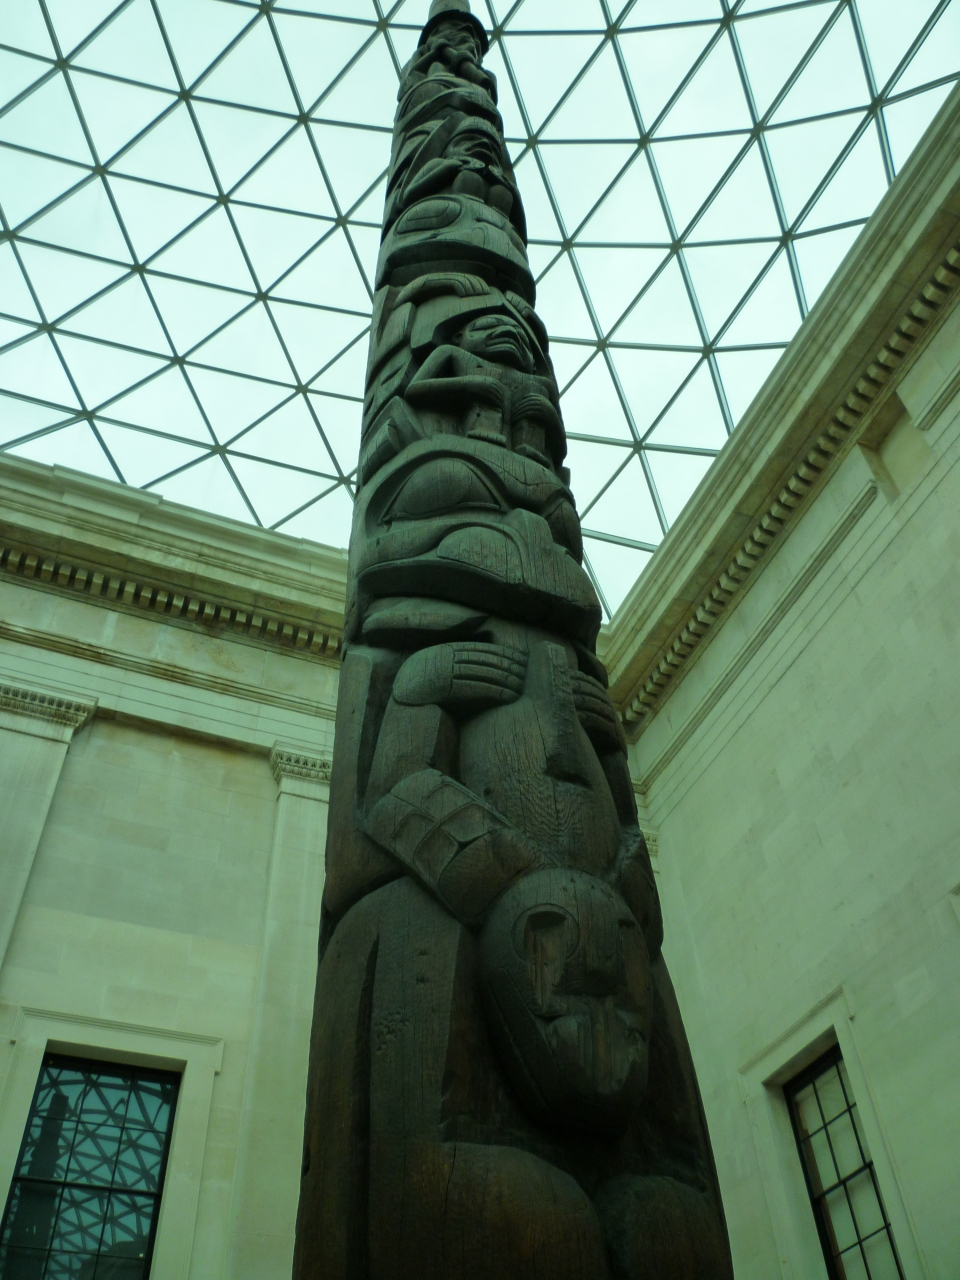 Totem pole in Great Court